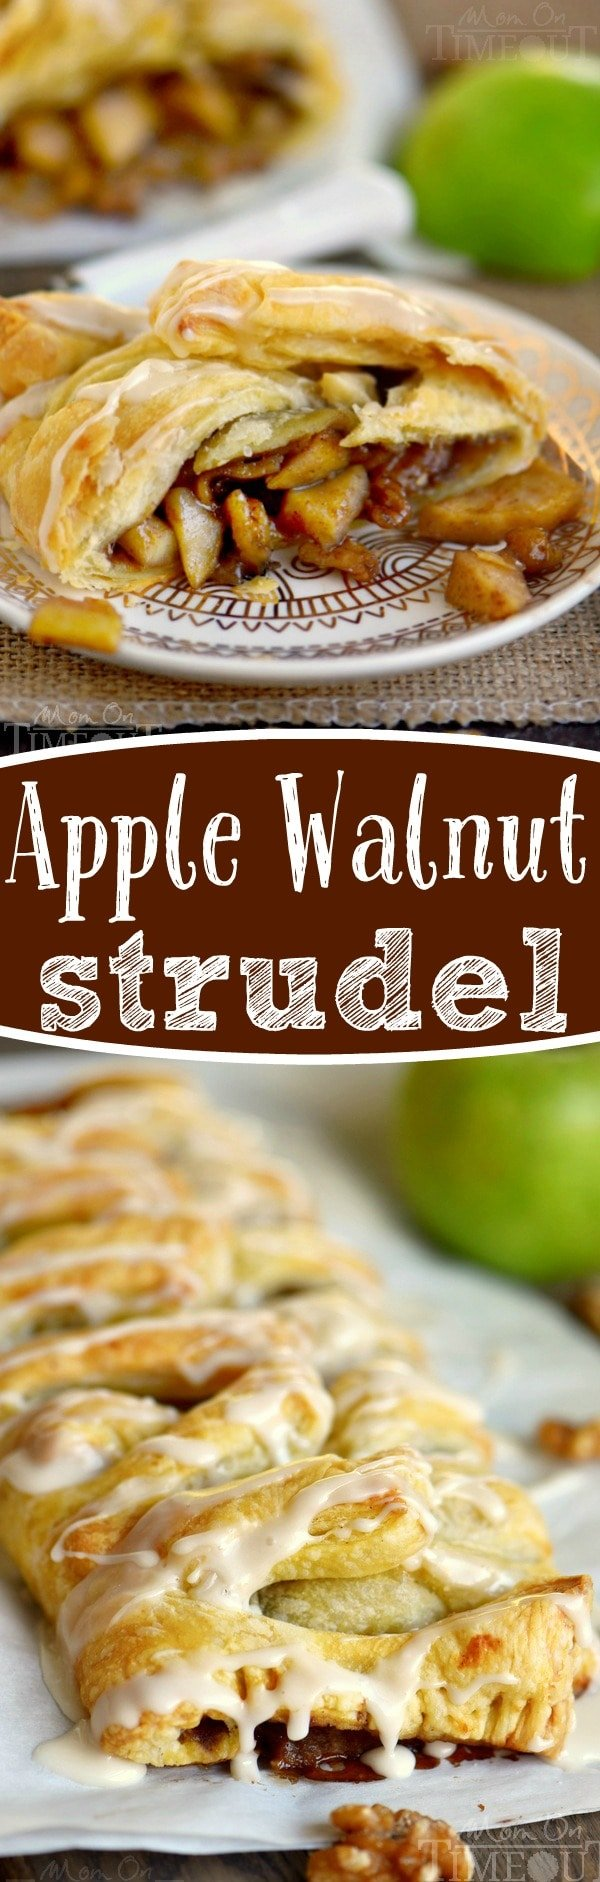 This easy Apple Walnut Strudel is the BEST way to wake up this fall! Perfect for breakfast, brunch or even dessert, this sweet treat is impossible to resist!